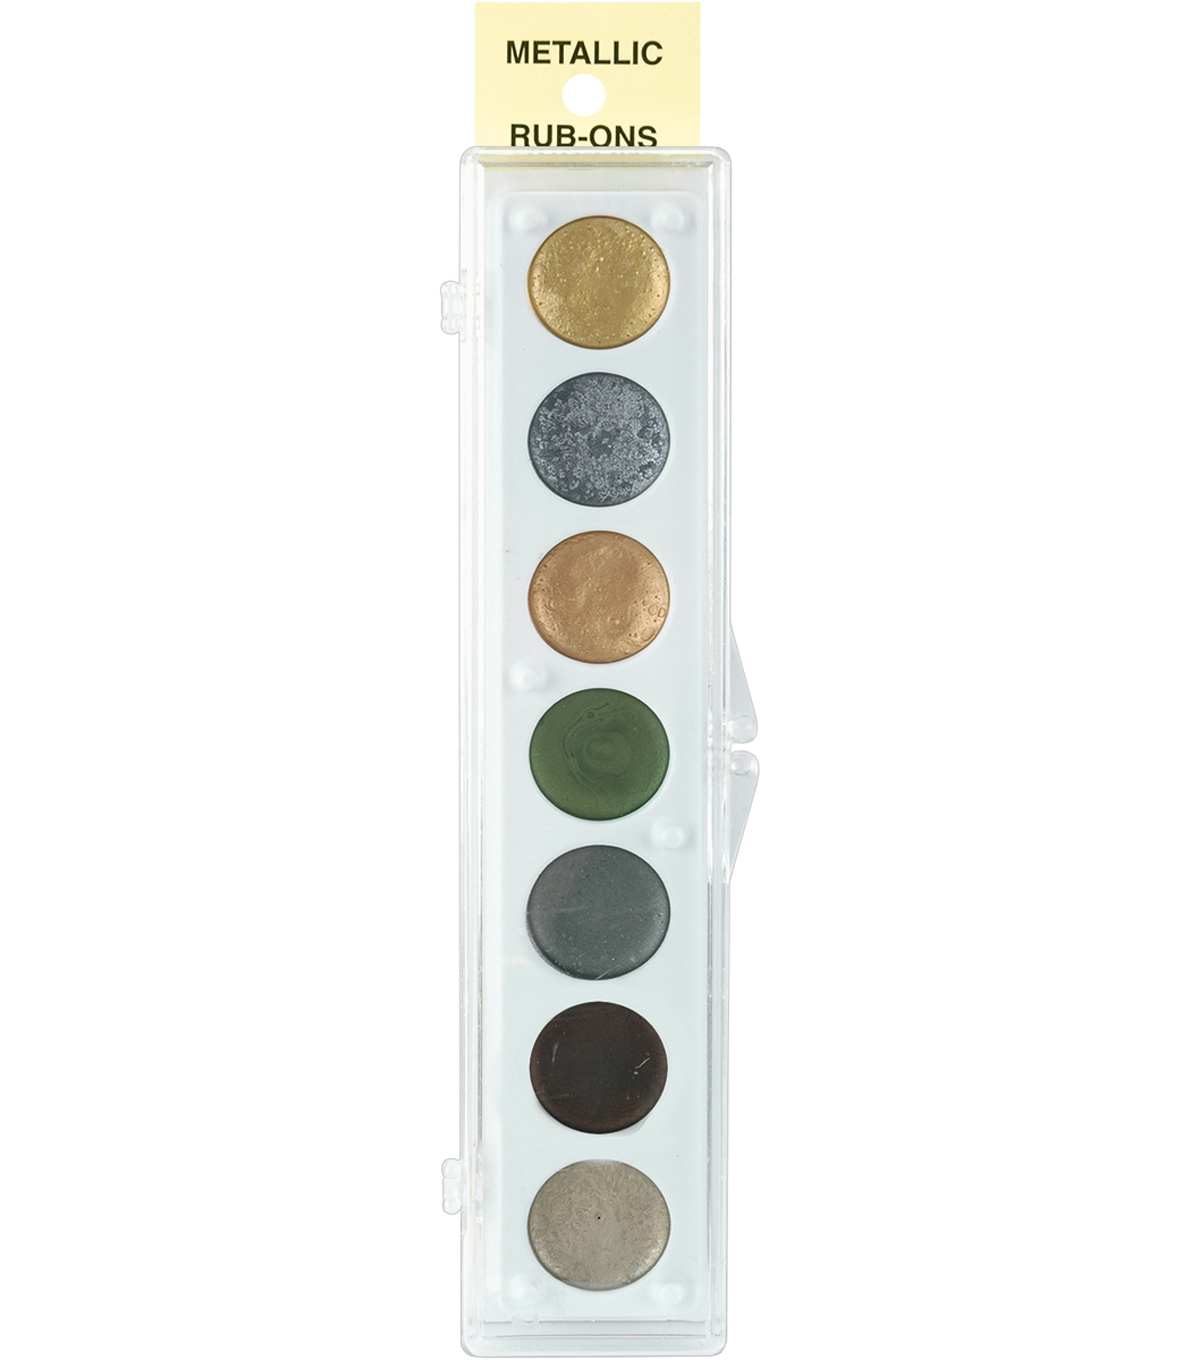 Metallic Rub-On Paint Palette-7 Colors-Kit #2